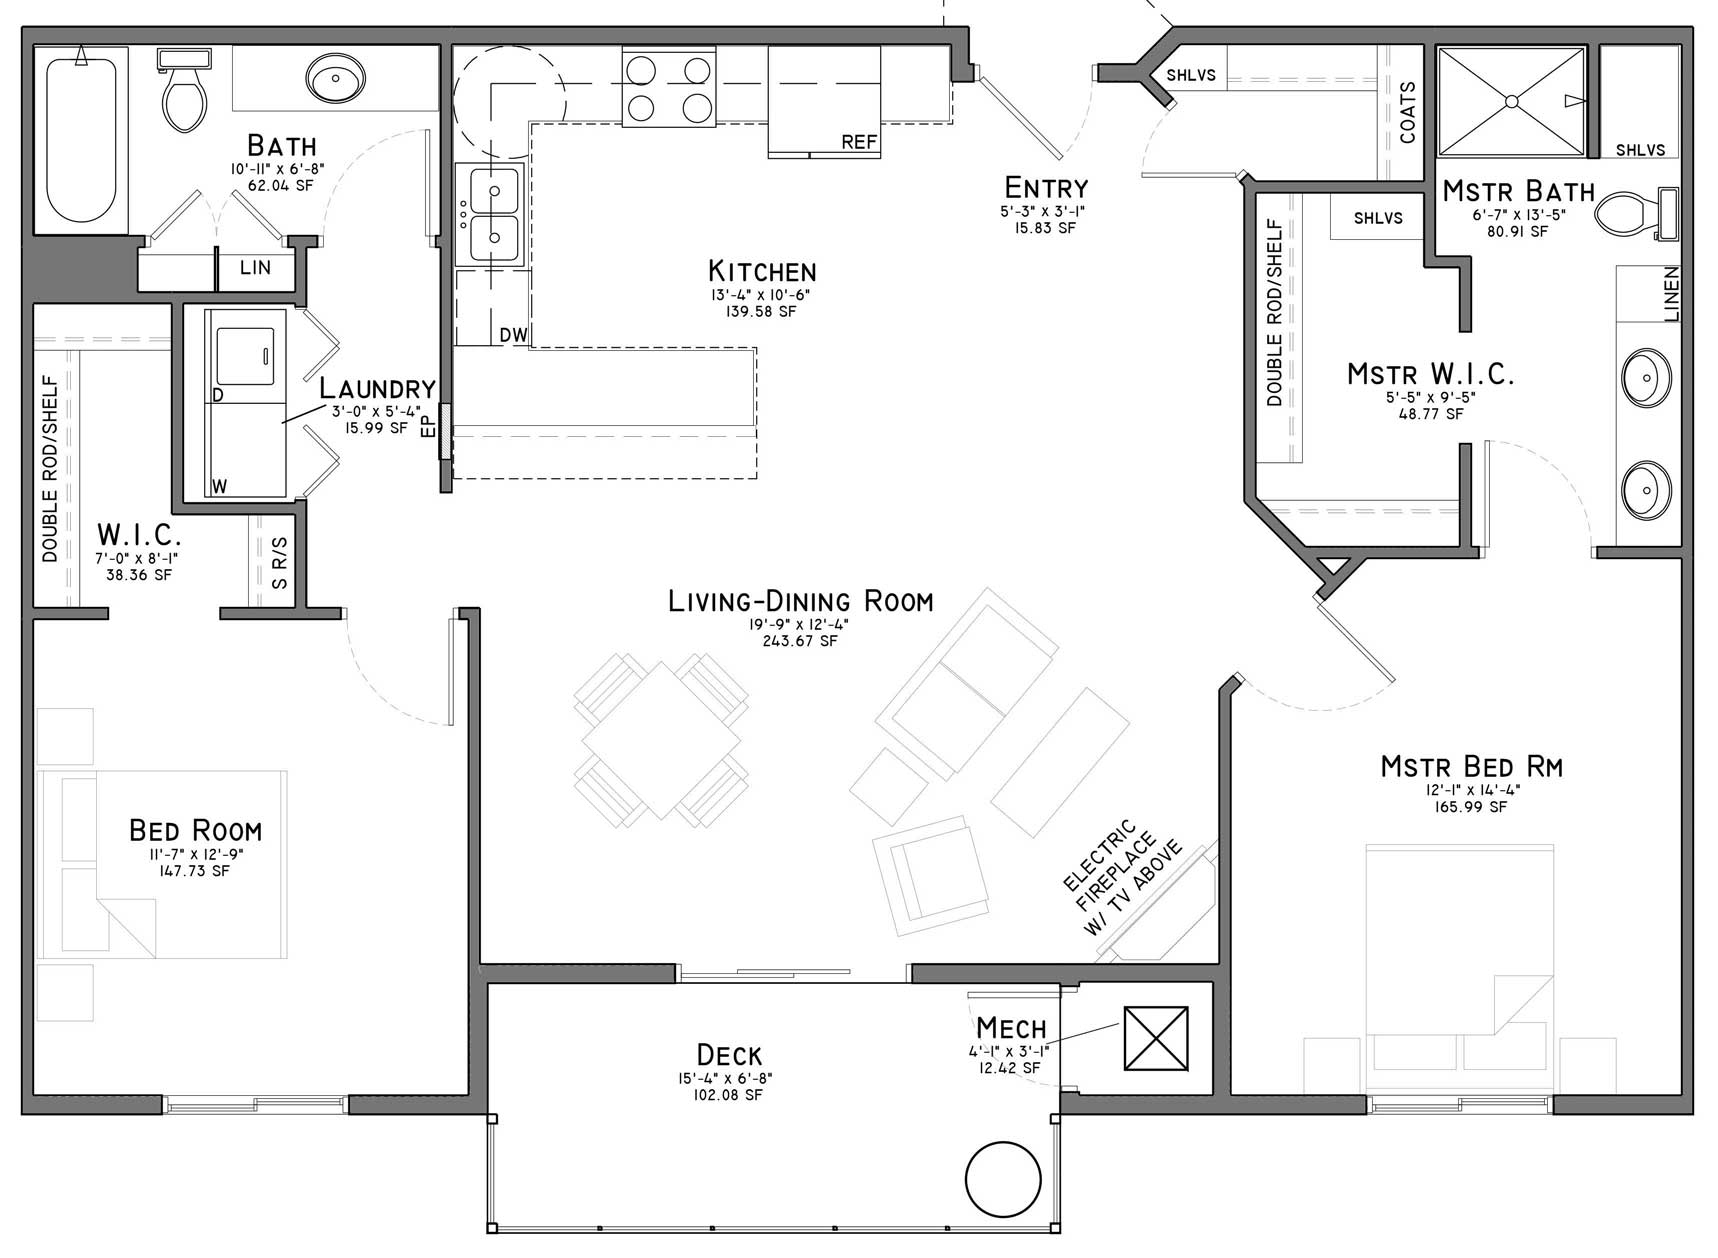 Floor plans the flats at shadow creek east lincoln ne - Two bedroom apartments lincoln ne ...